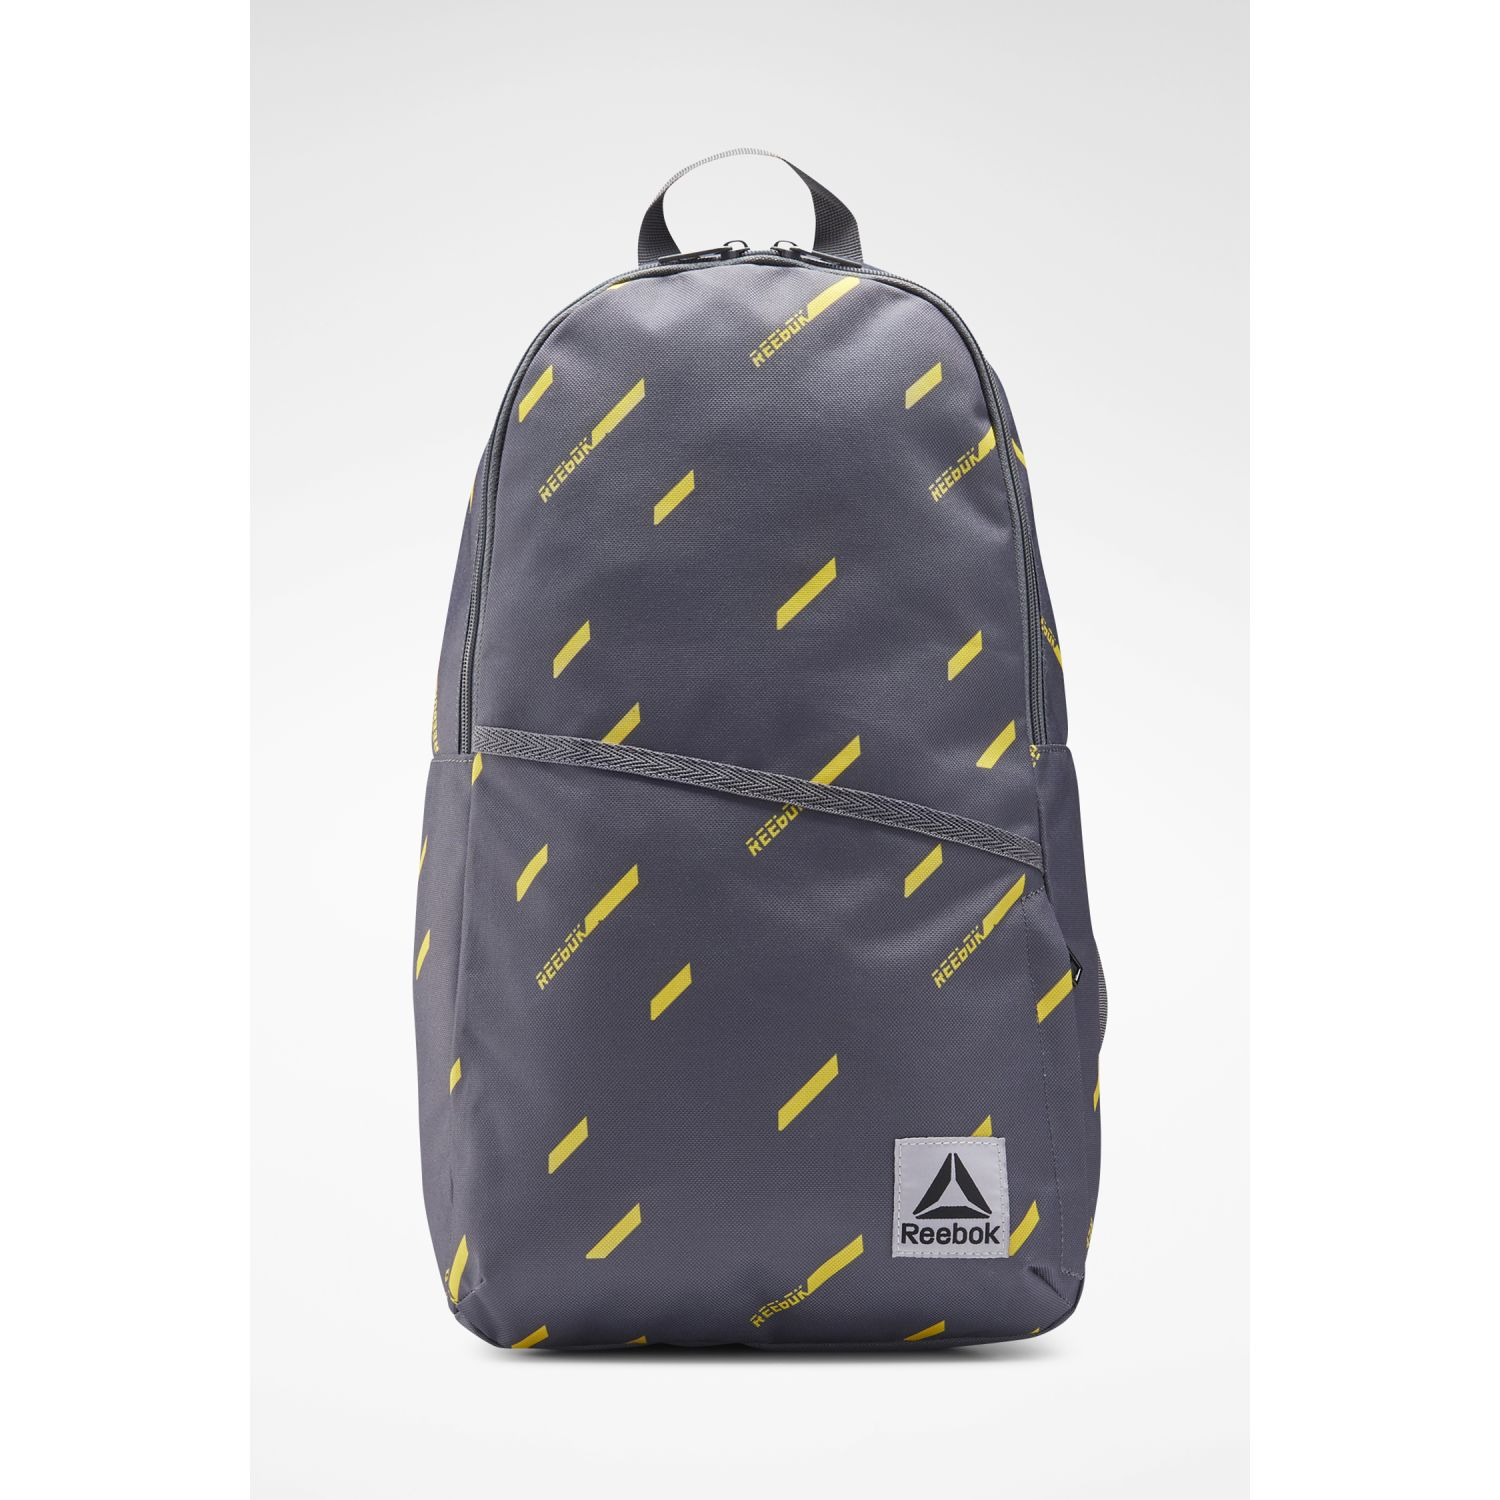 Reebok Wor Follow Gr Bp Plomo / amarillo Mochilas Multipropósitos